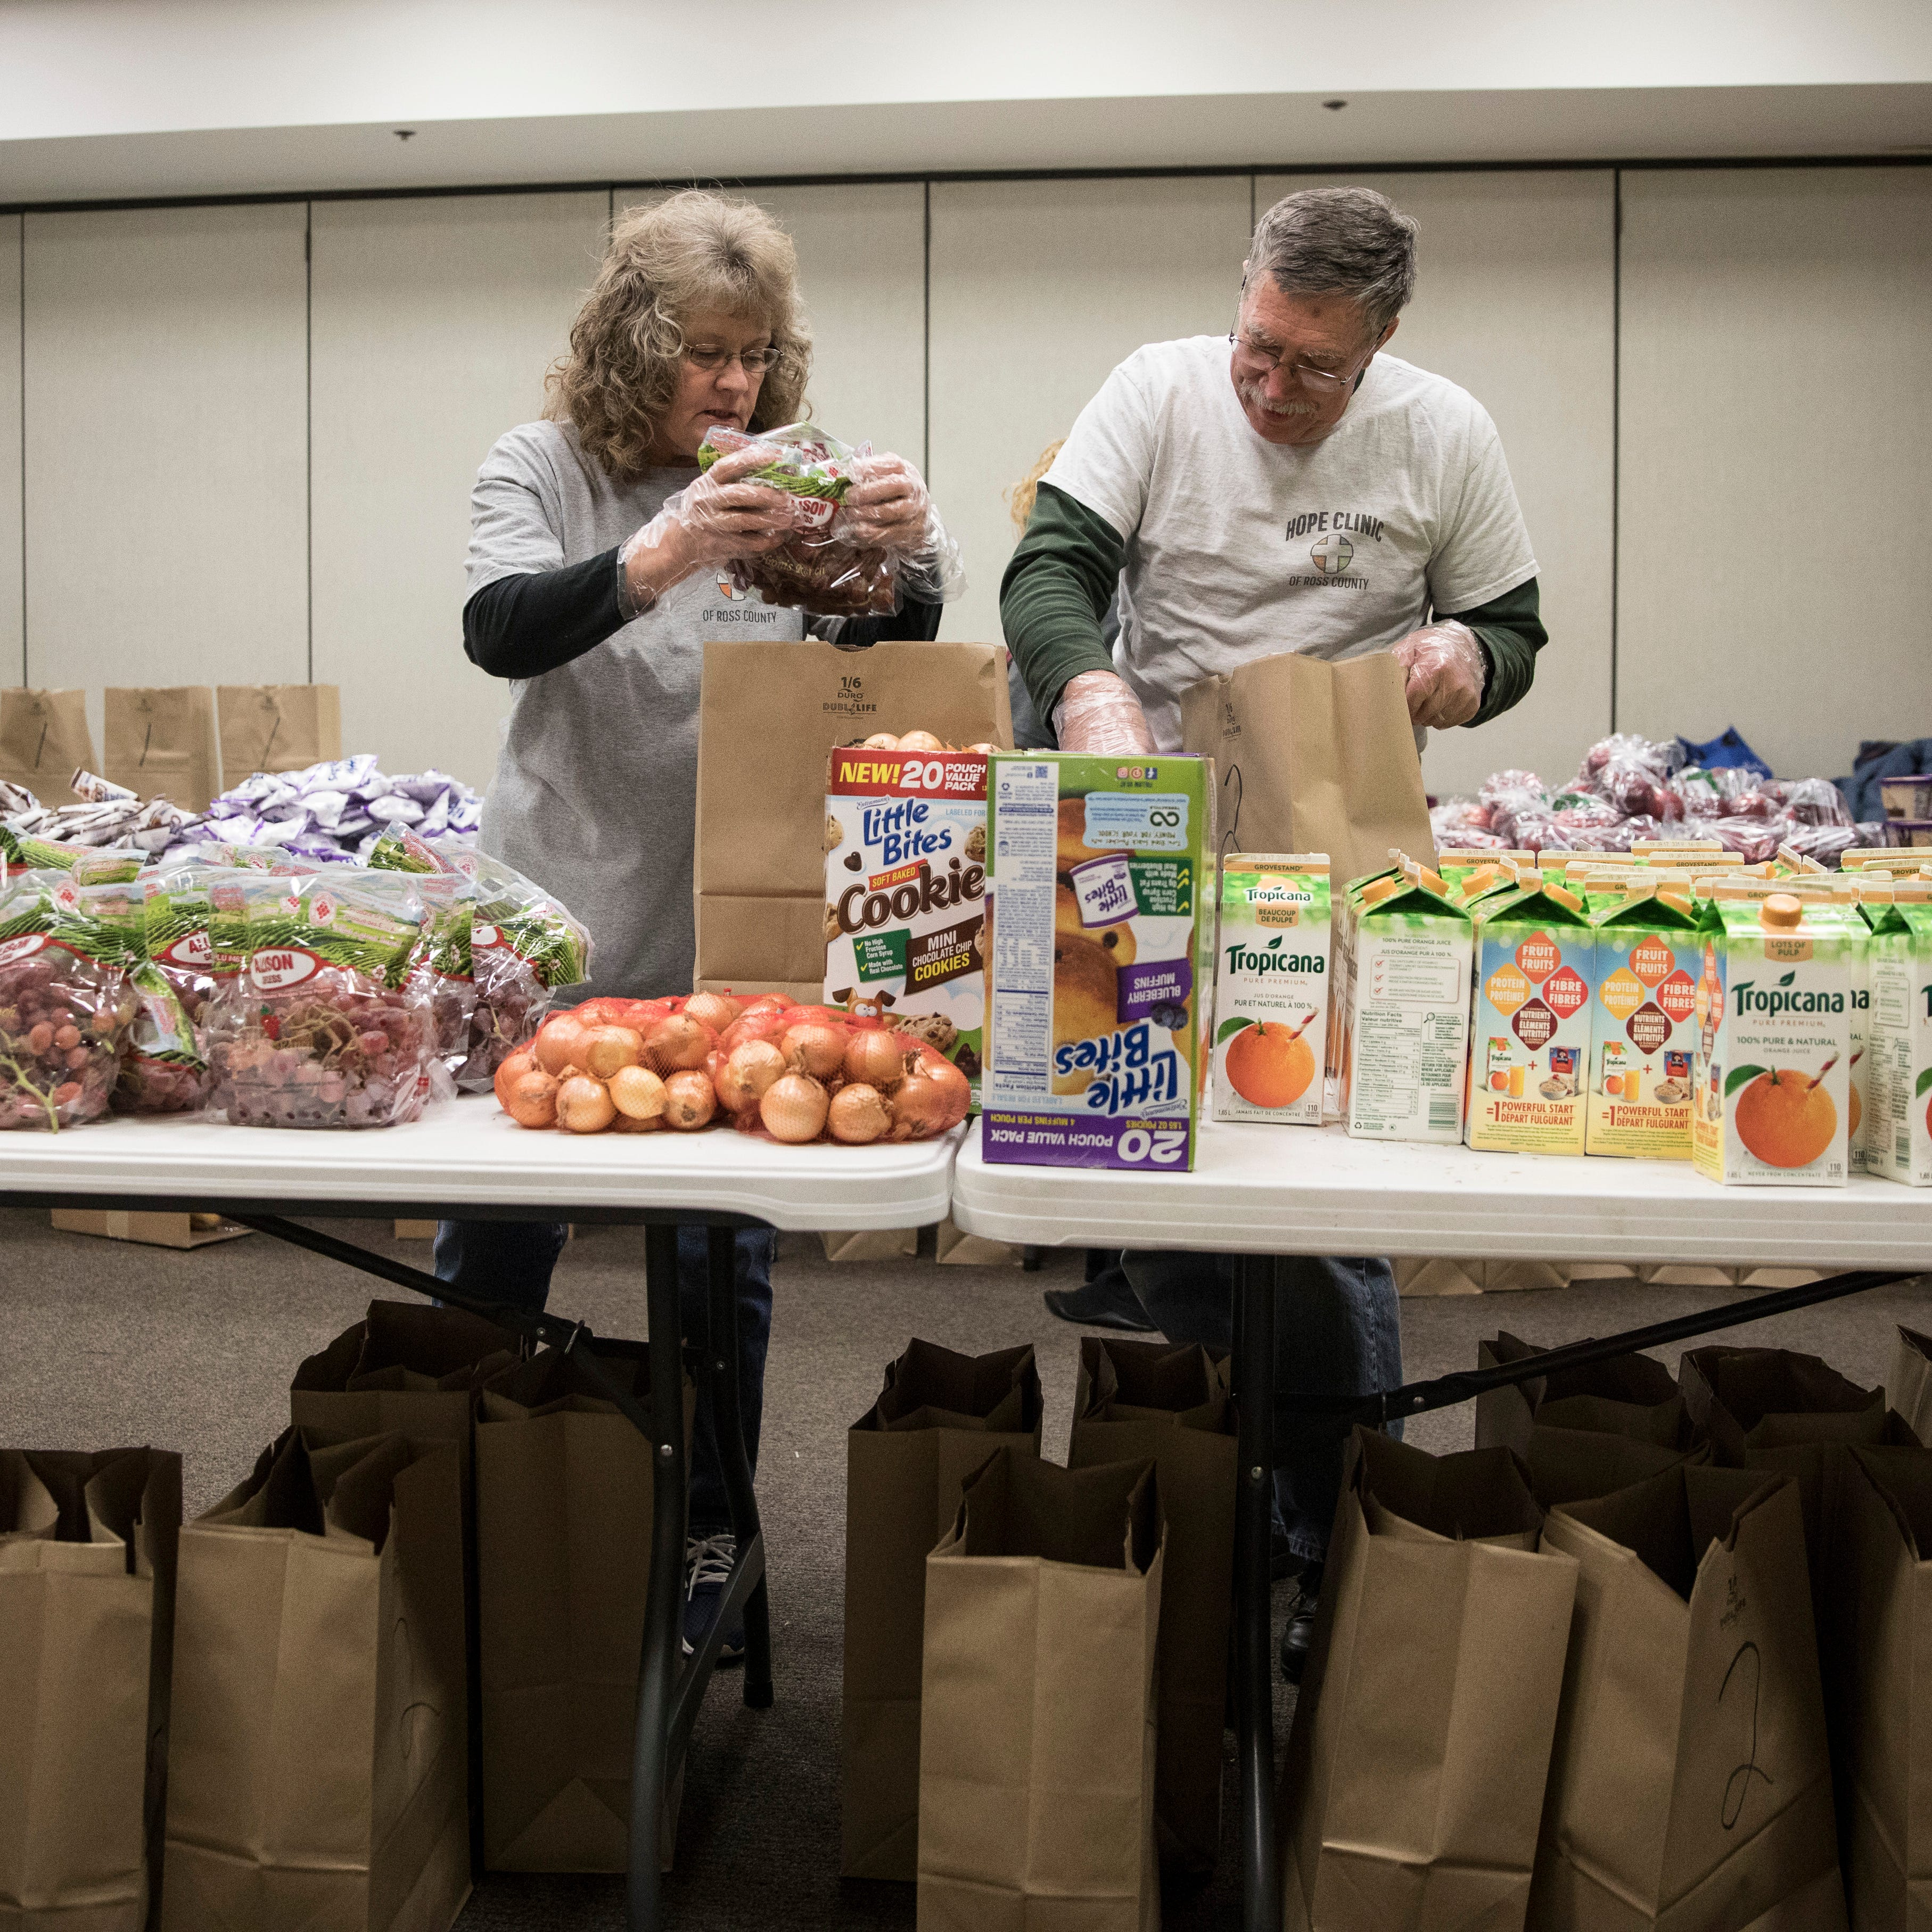 Mobile Market brings more than food to Ross County